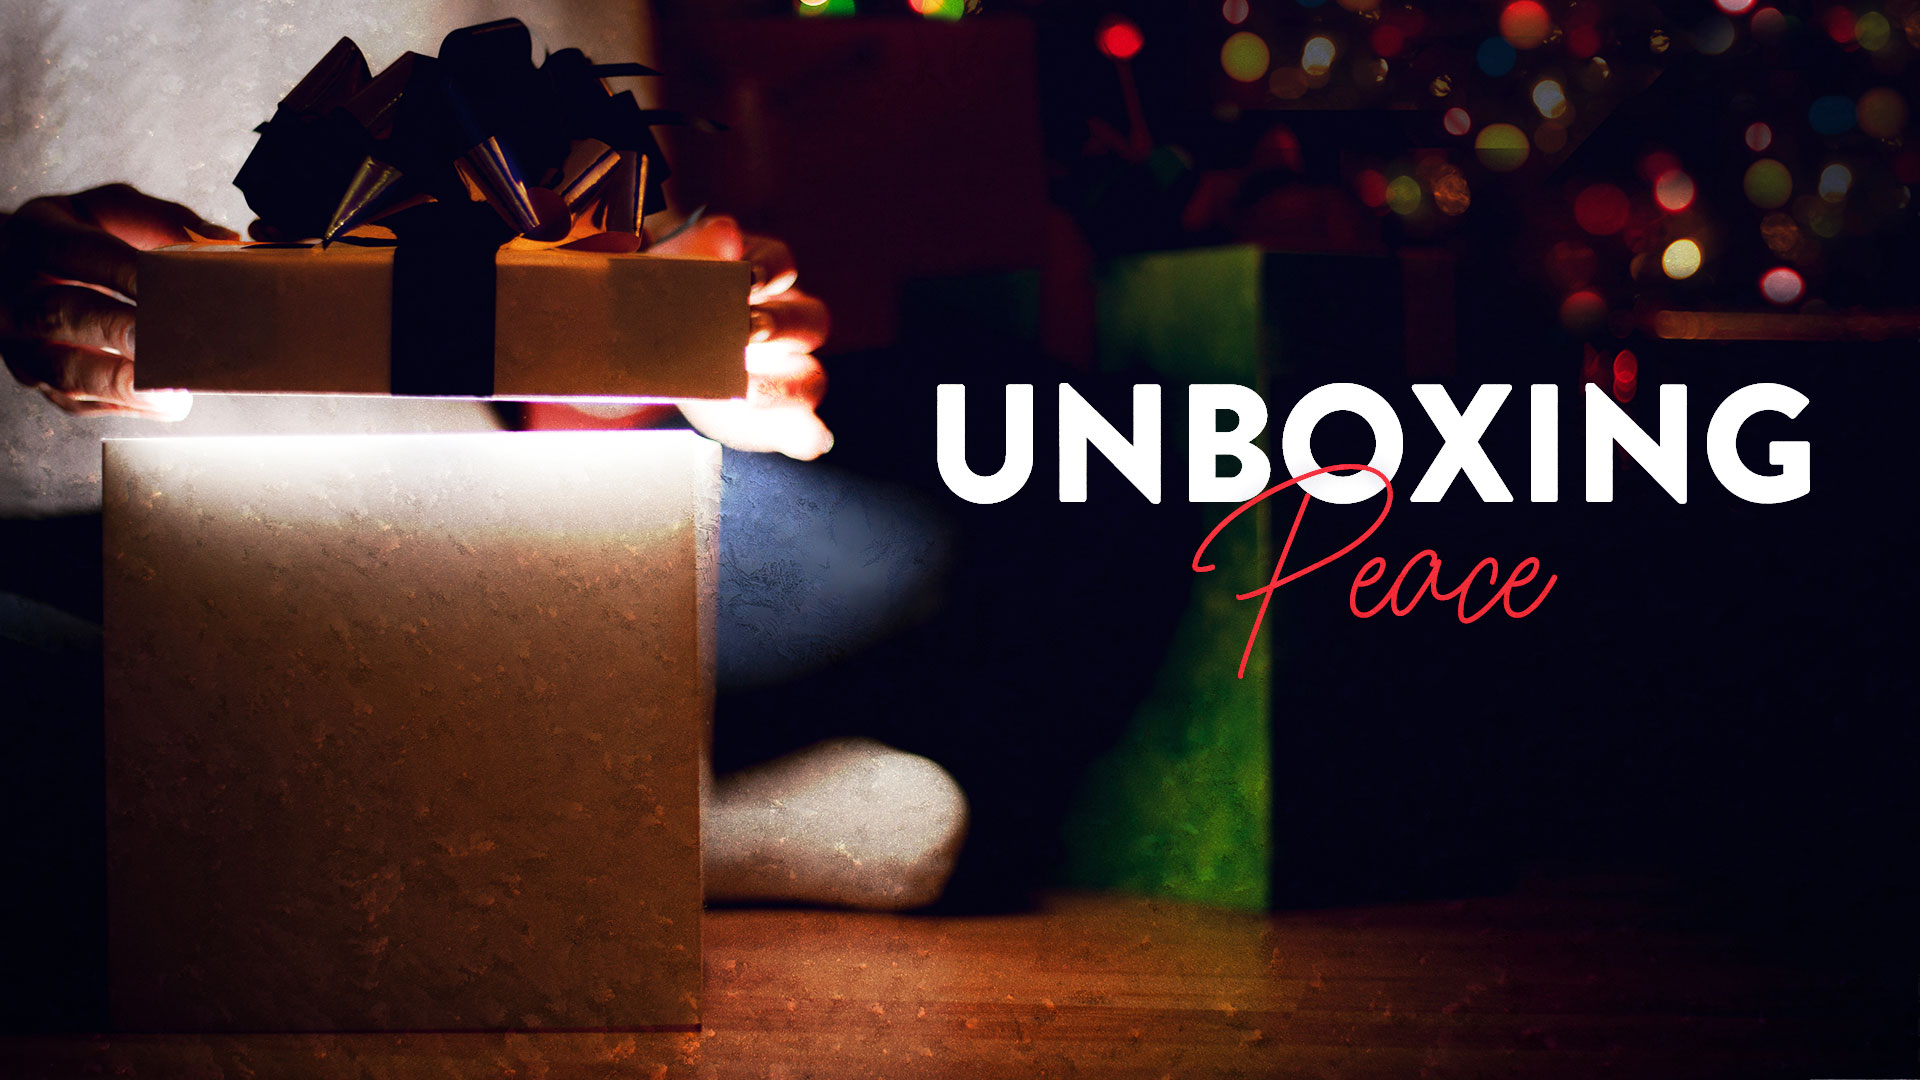 Unboxing Peace